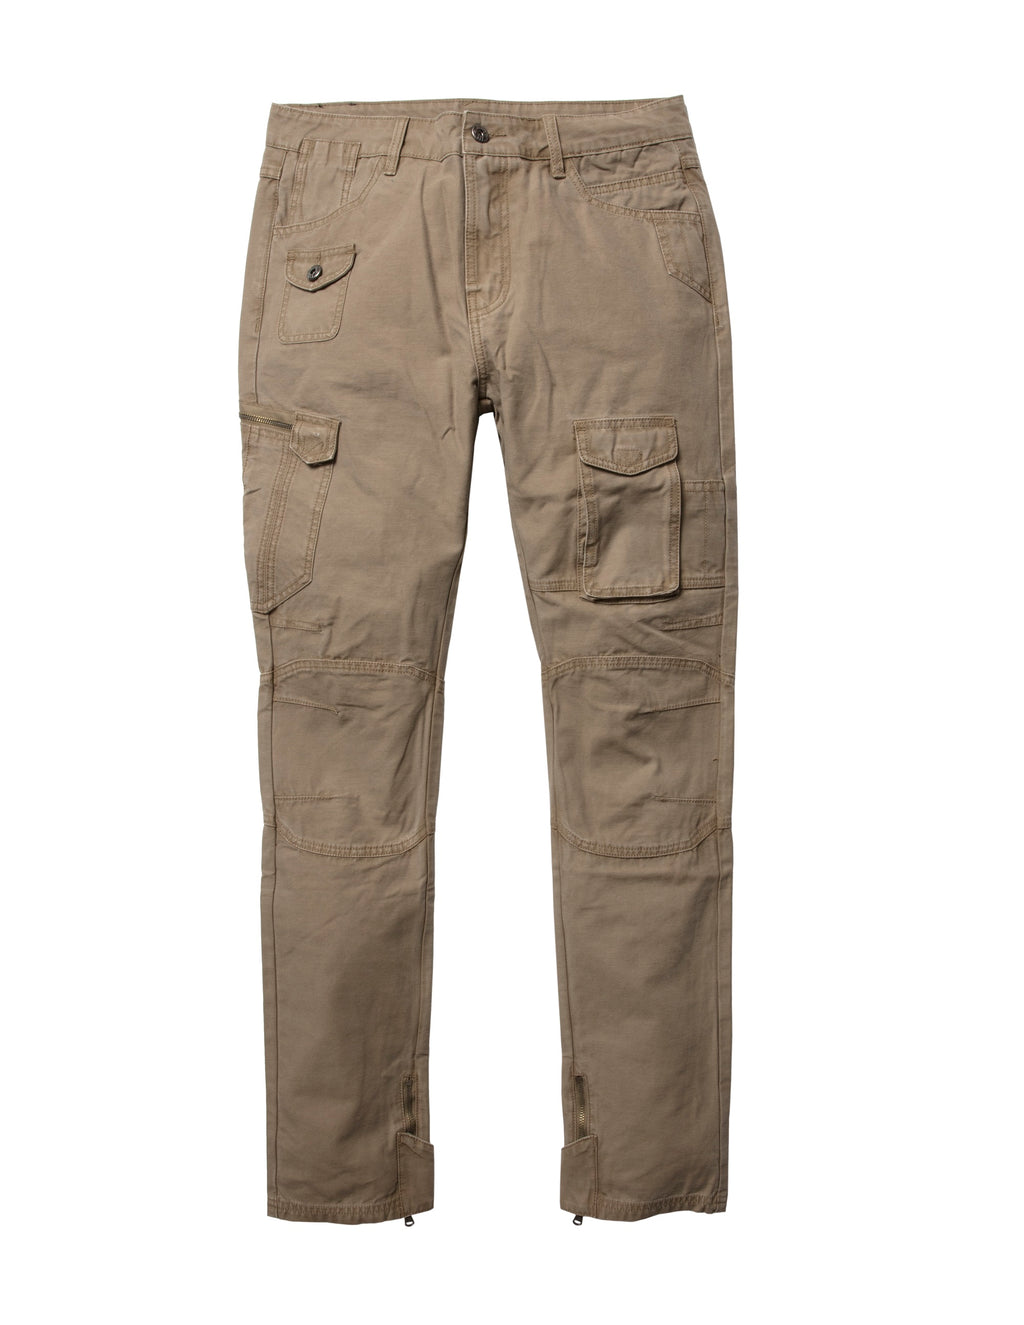 Lil Guy Cargo Pant